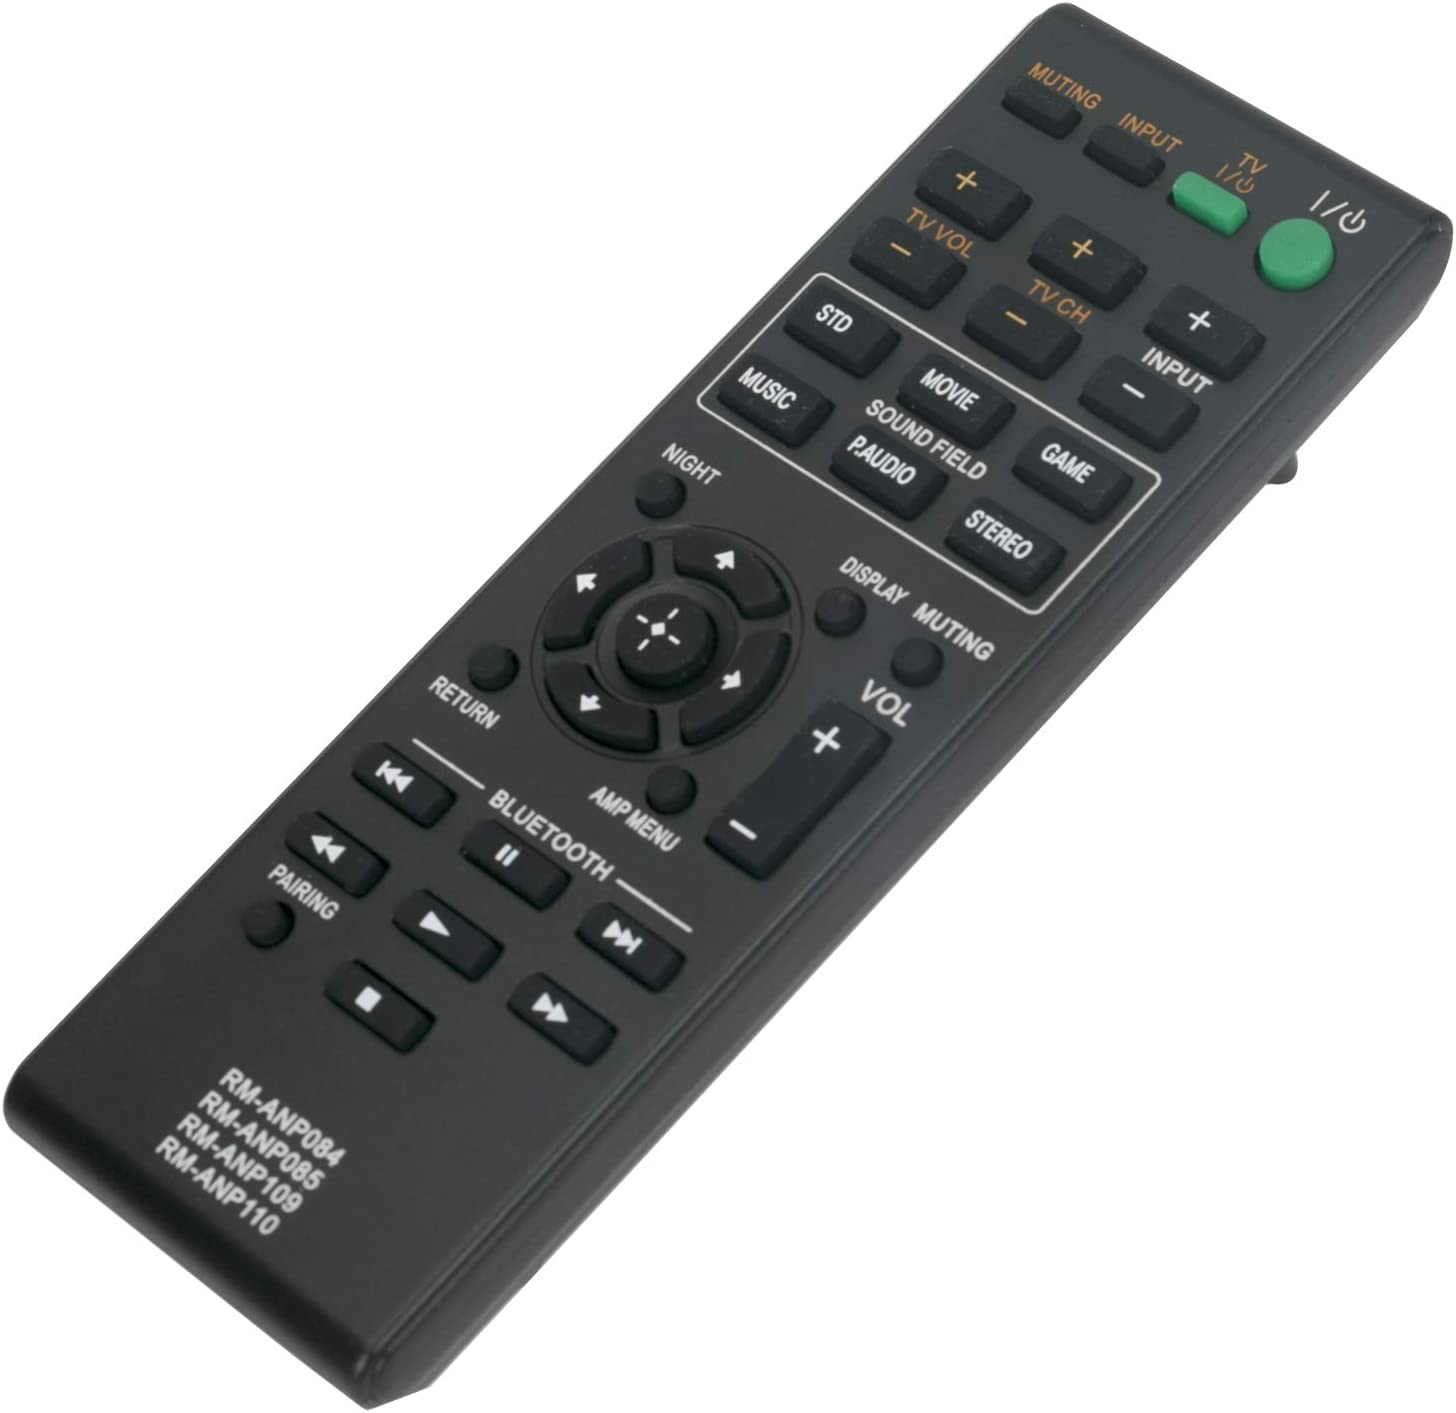 New RM-ANP084 RM-ANP085 RM-ANP109 RM-ANP110 Remote Control for Sony Home Theater AV Audio Video System HT-CT260C HT-CT260H HT-CT260W HT-CT260 HT-CT260HP SA-WCT260 PN1H SA-CT260 SA-CT260H